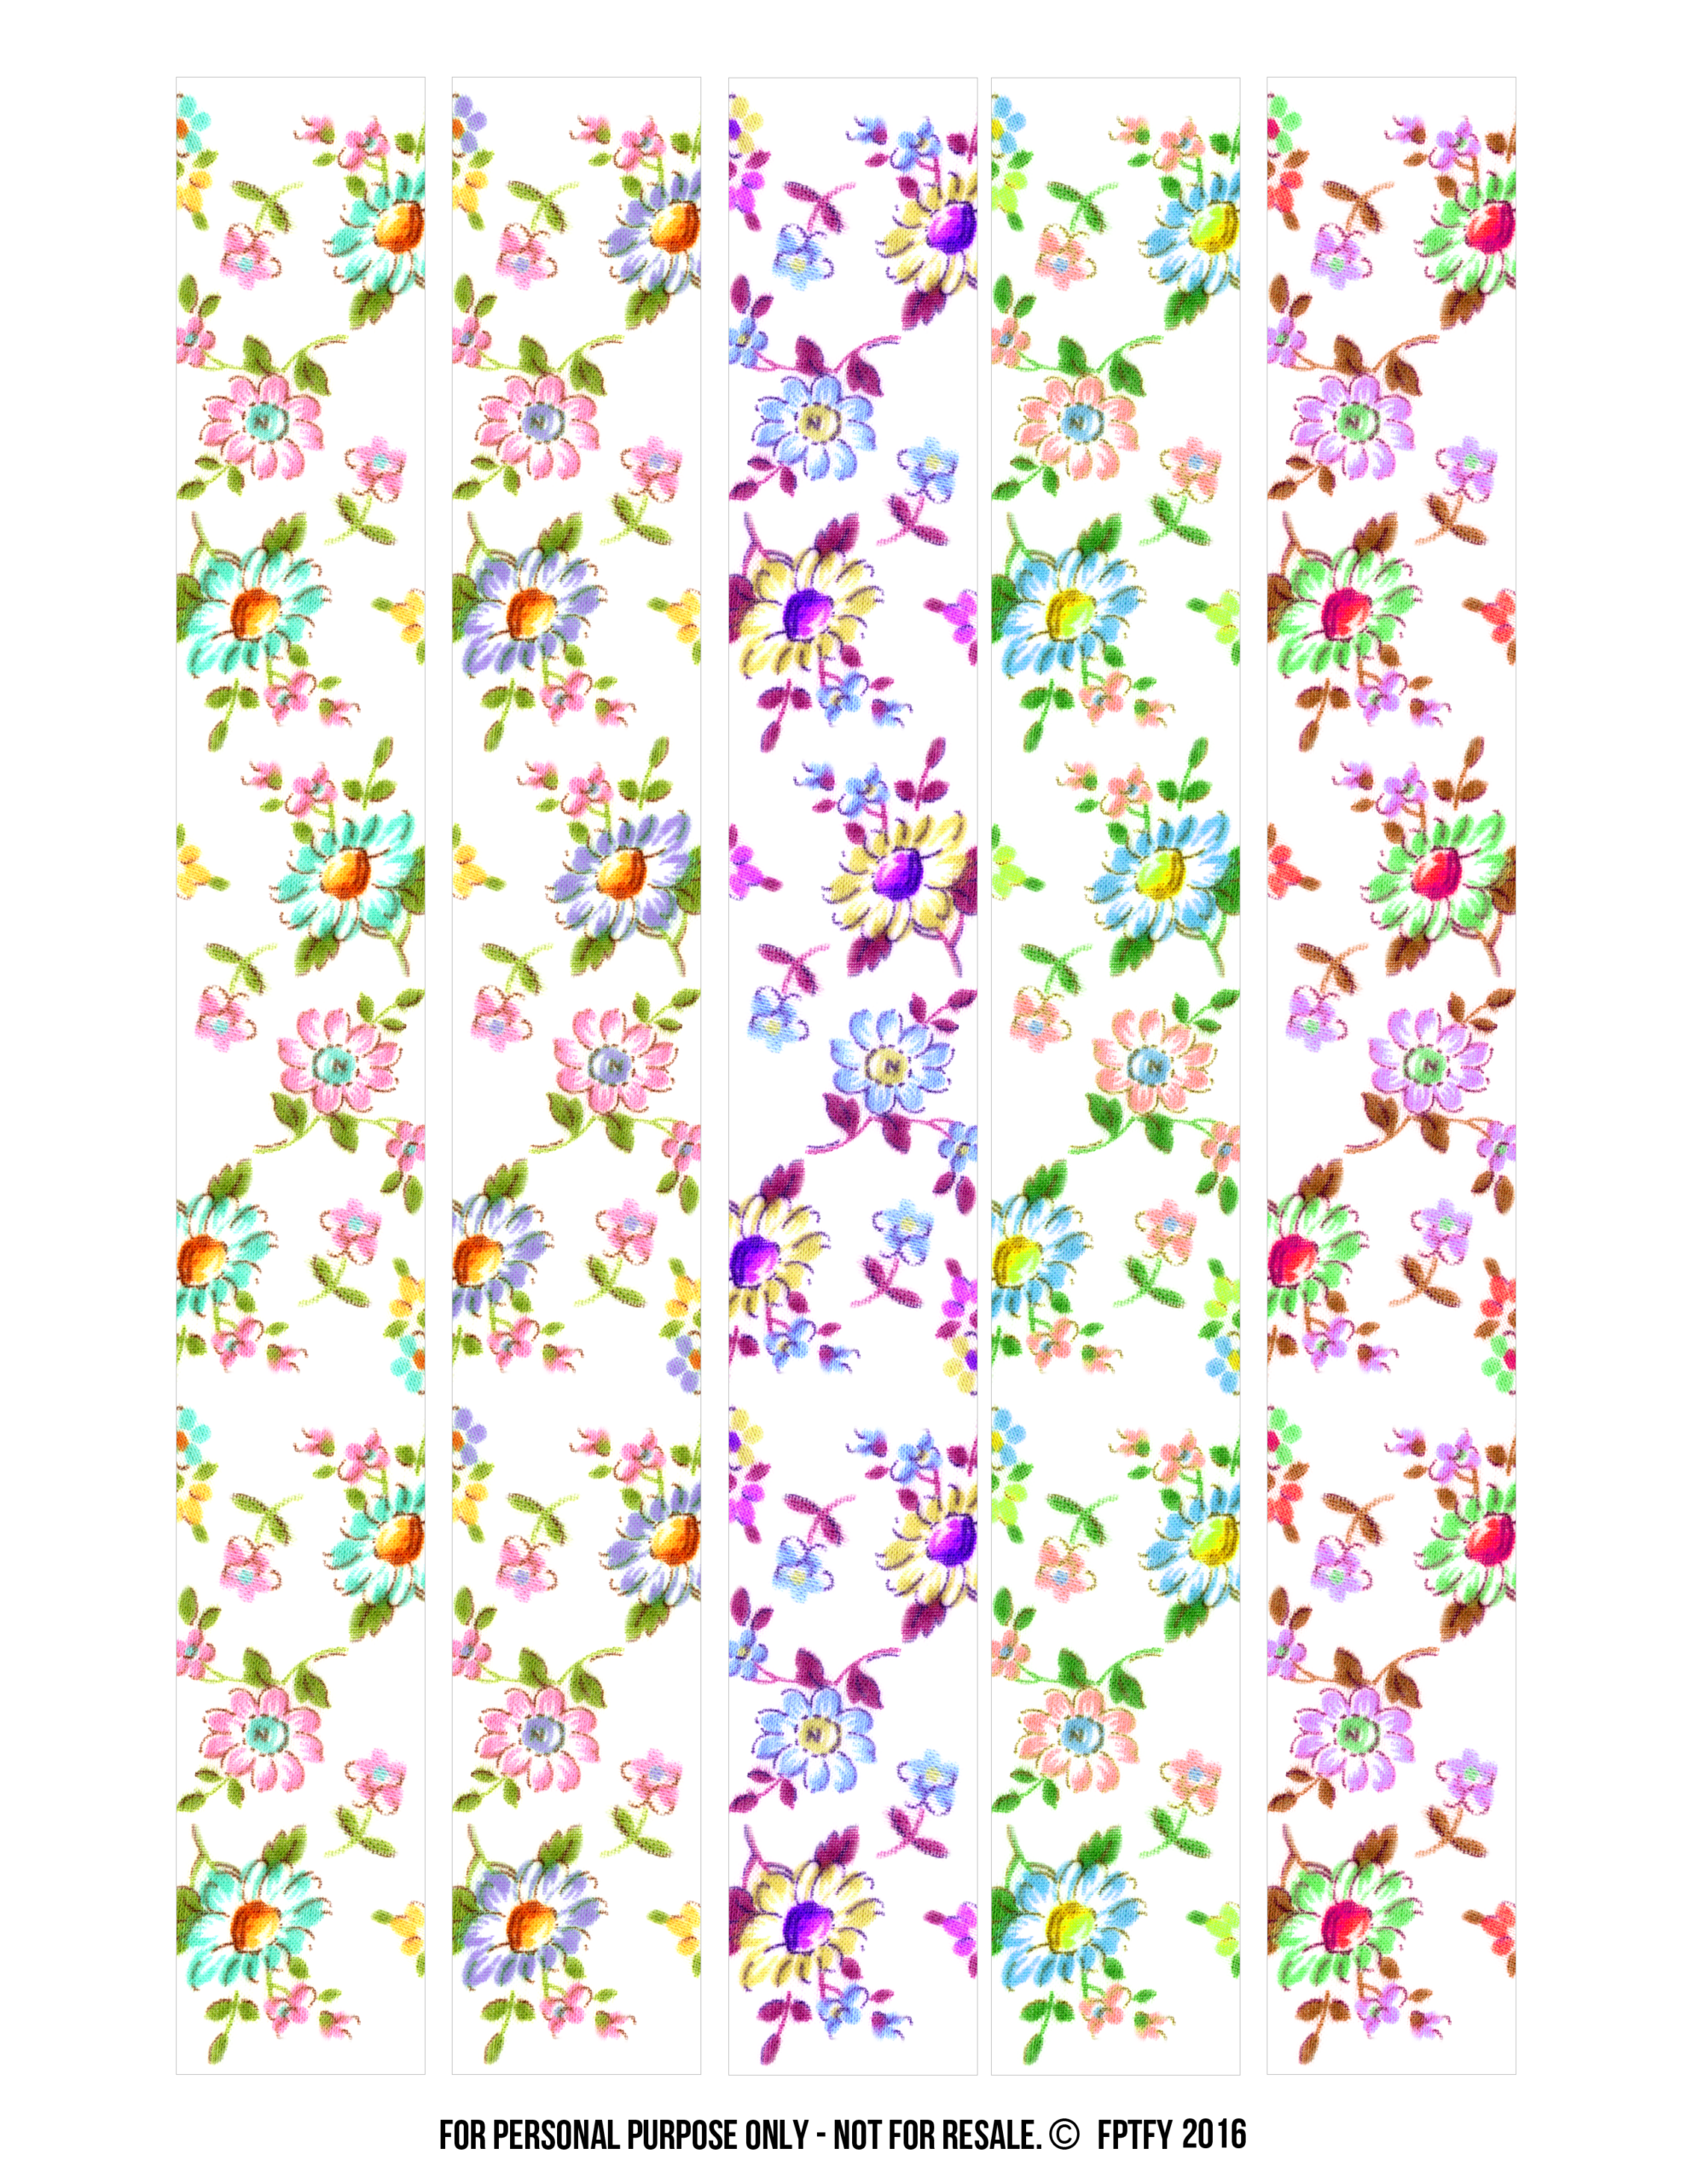 image regarding Free Printable Washi Tape named Absolutely free Floral Electronic Washi Tape! - Absolutely free Quite Elements For Oneself